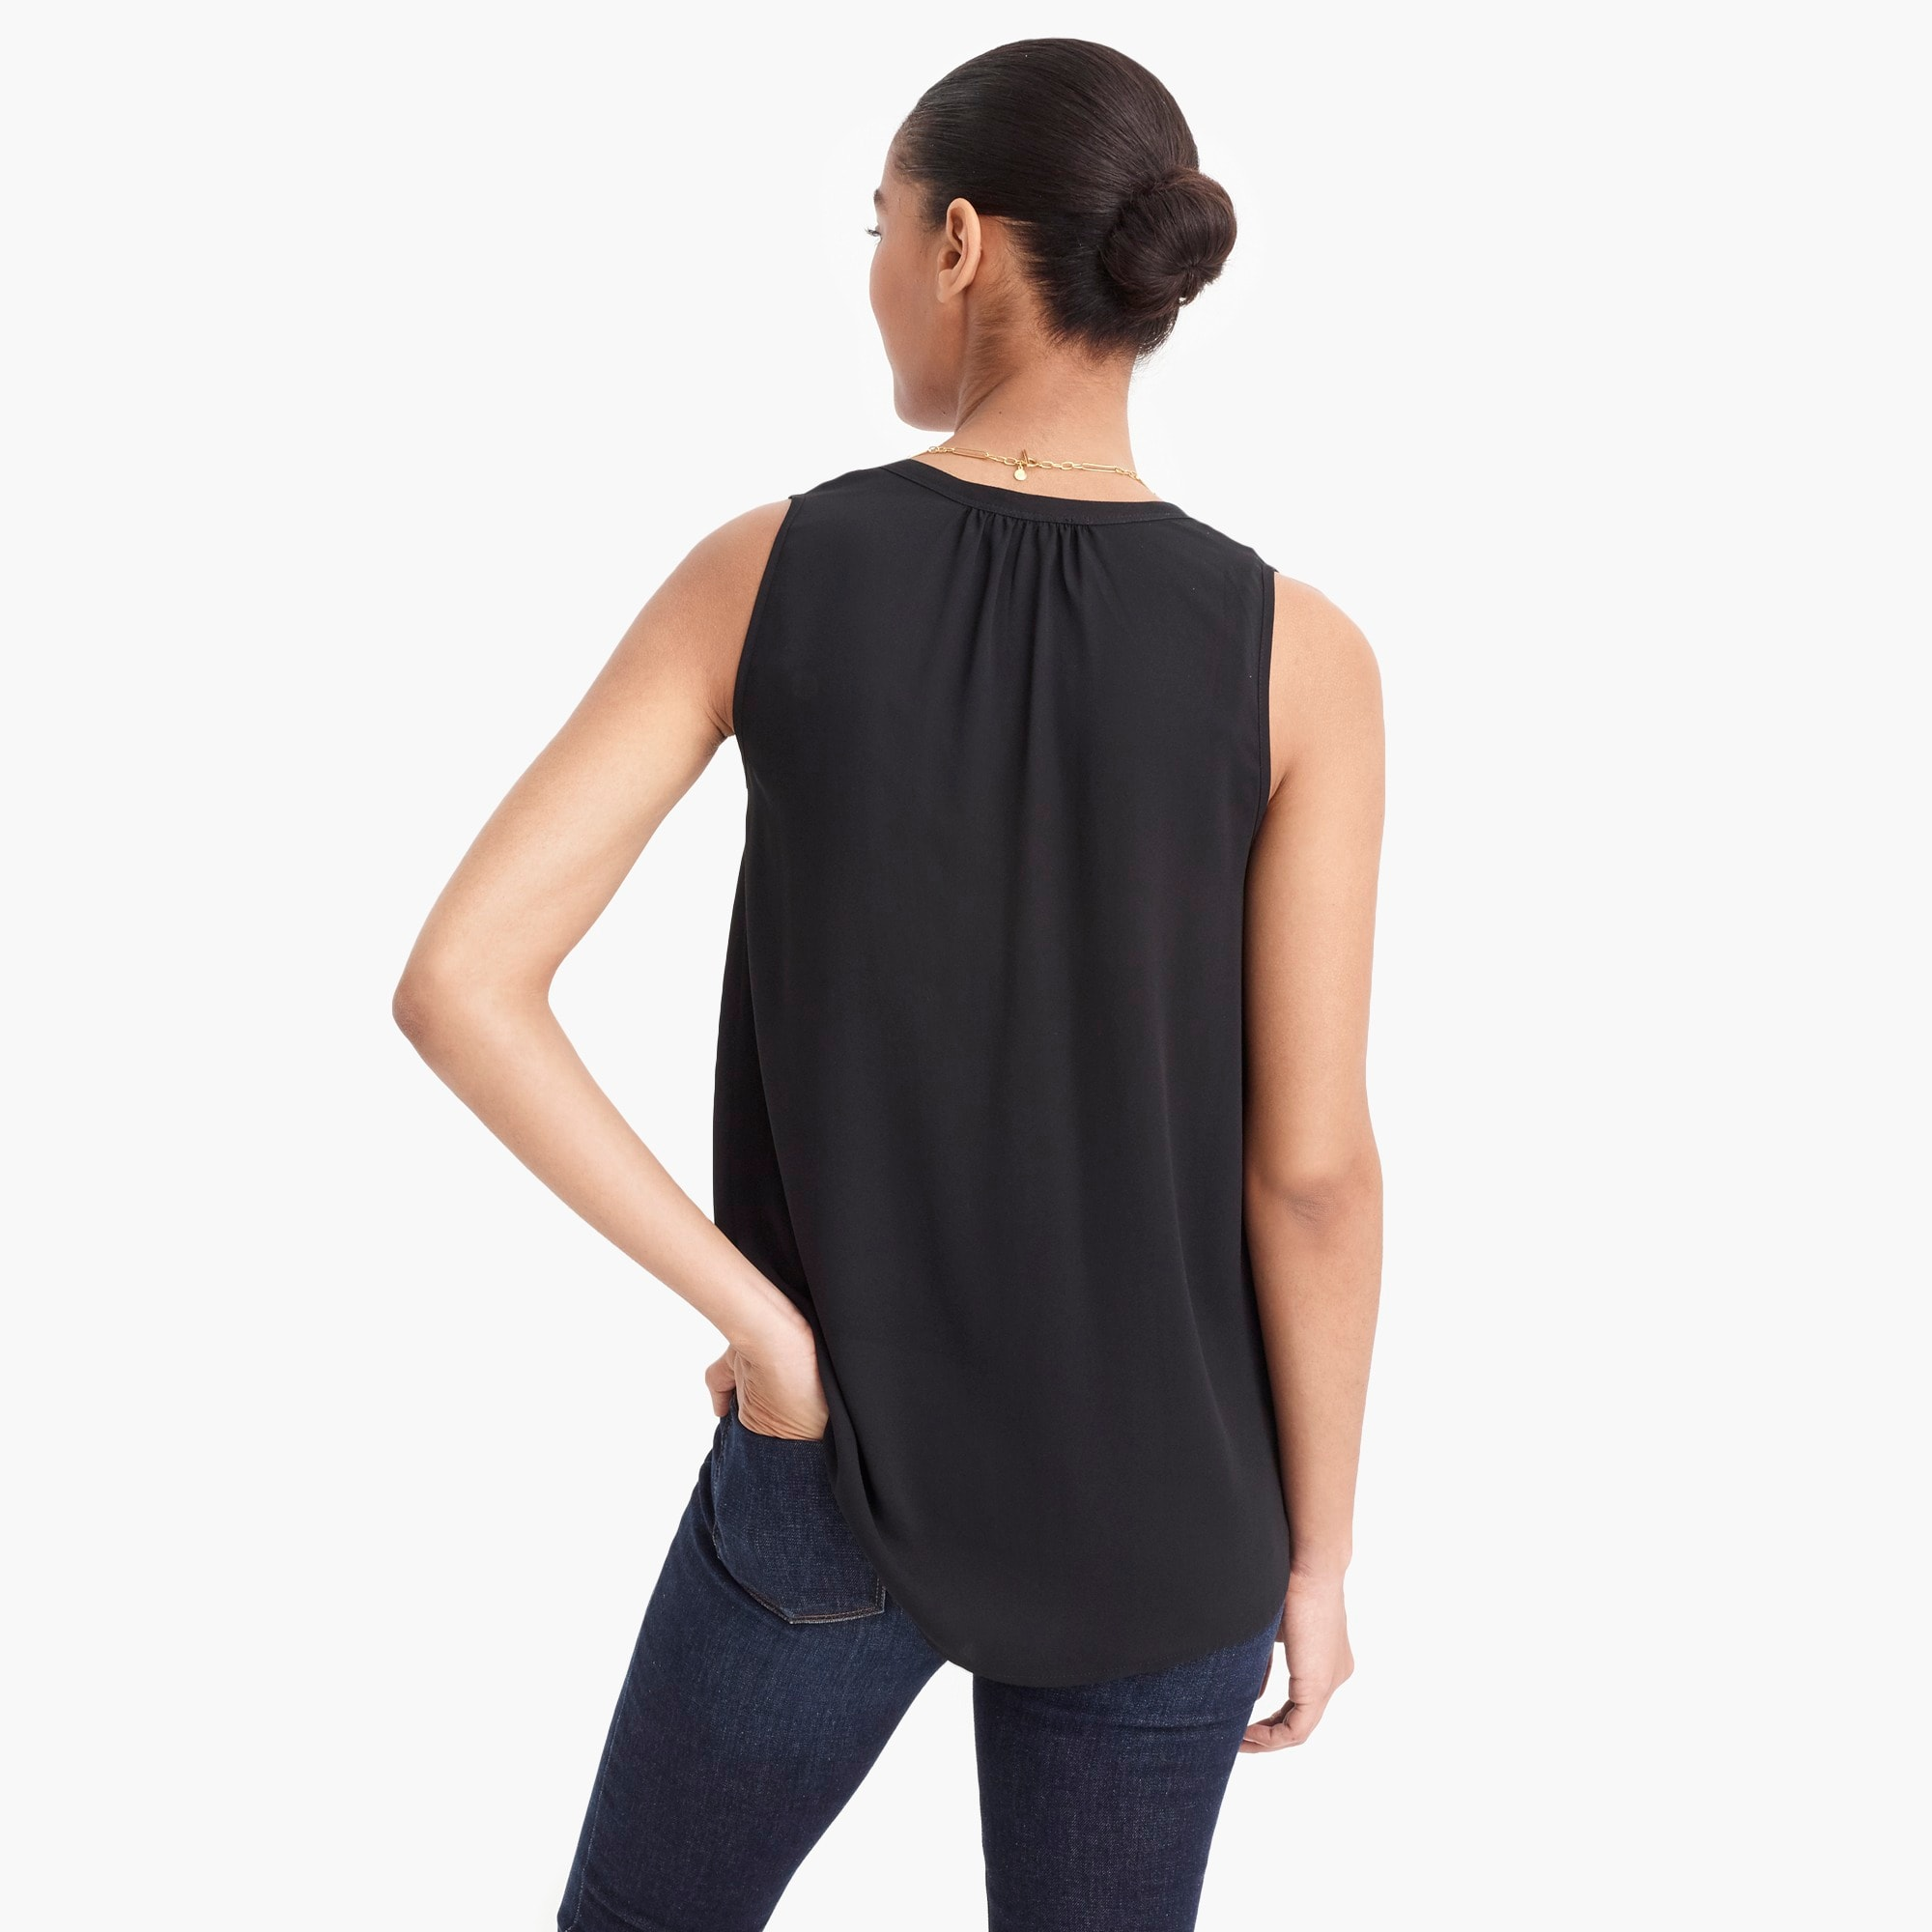 Image 5 for Petite sleeveless open V-neck top